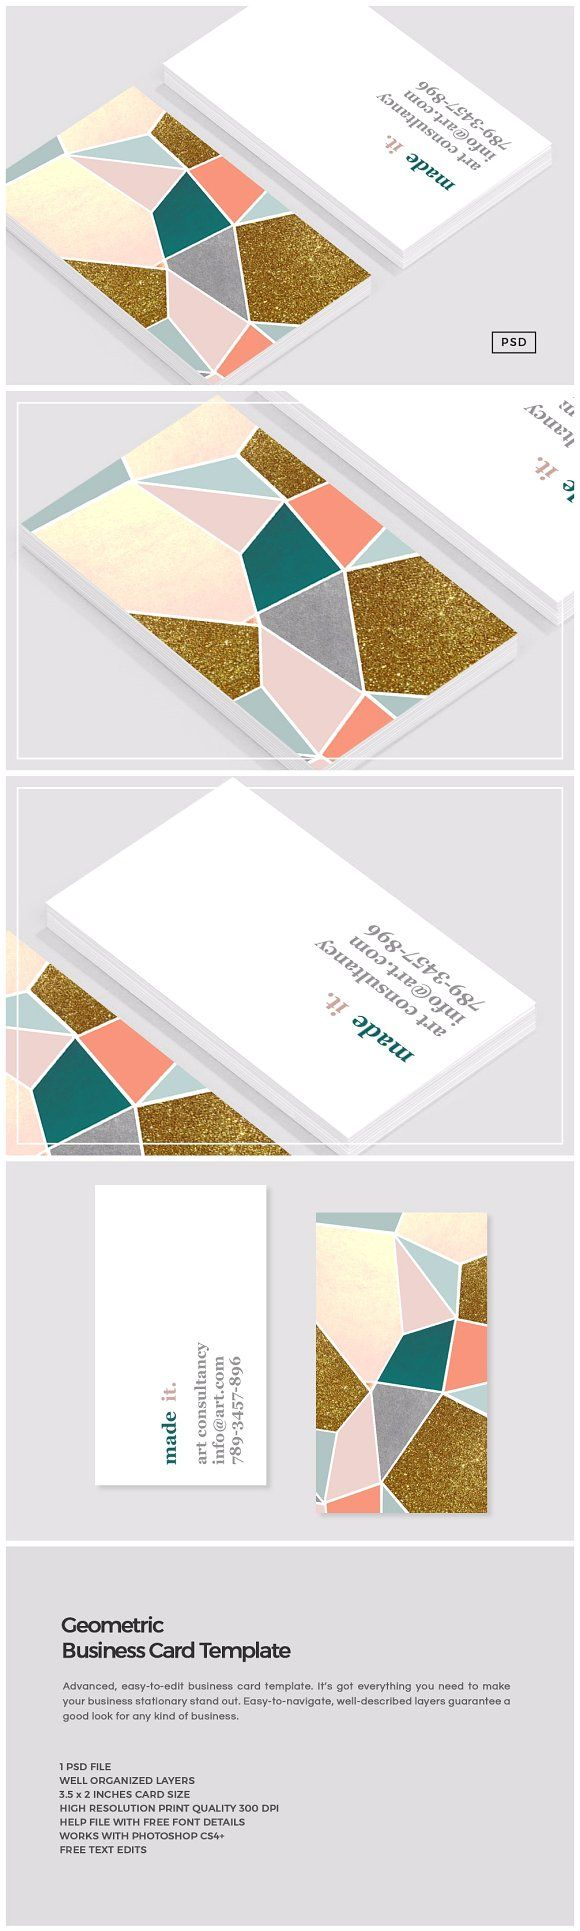 Geometric Business Card Template by The Design Label on @Graphicsauthor